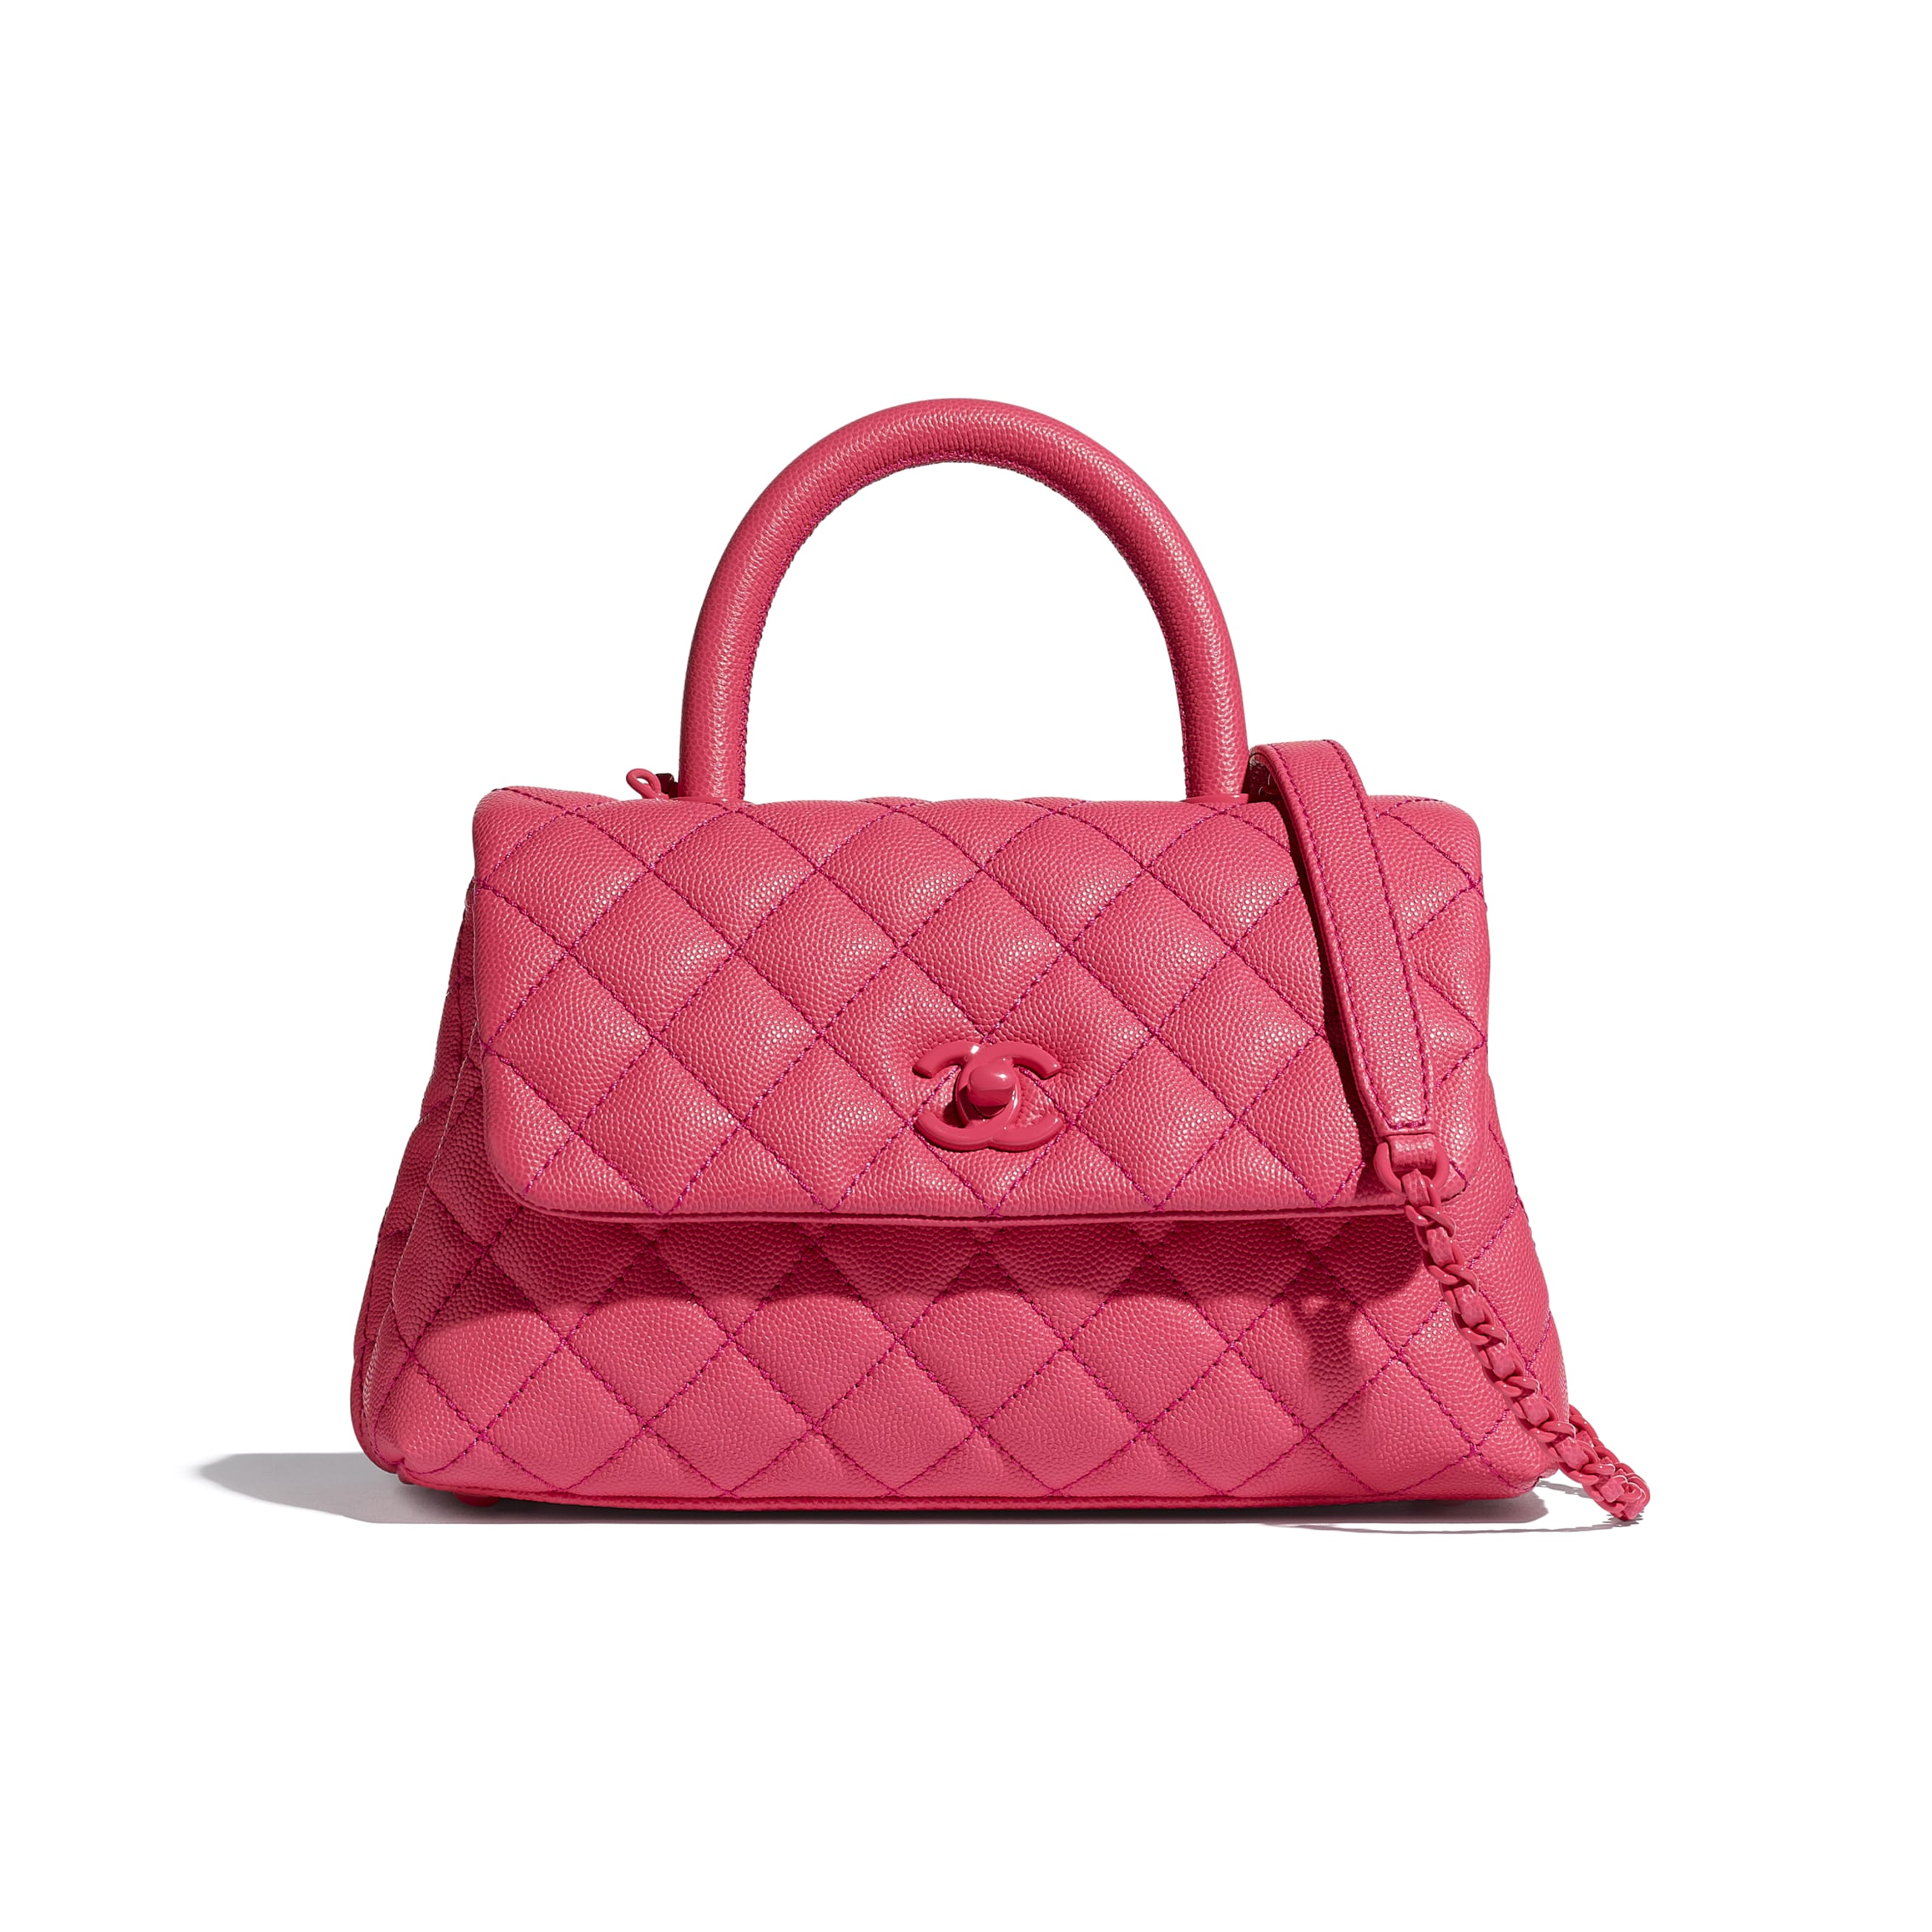 Flap Bag With Top Handle - Pink - Grained Calfskin & Lacquered Metal - CHANEL - Default view - see standard sized version